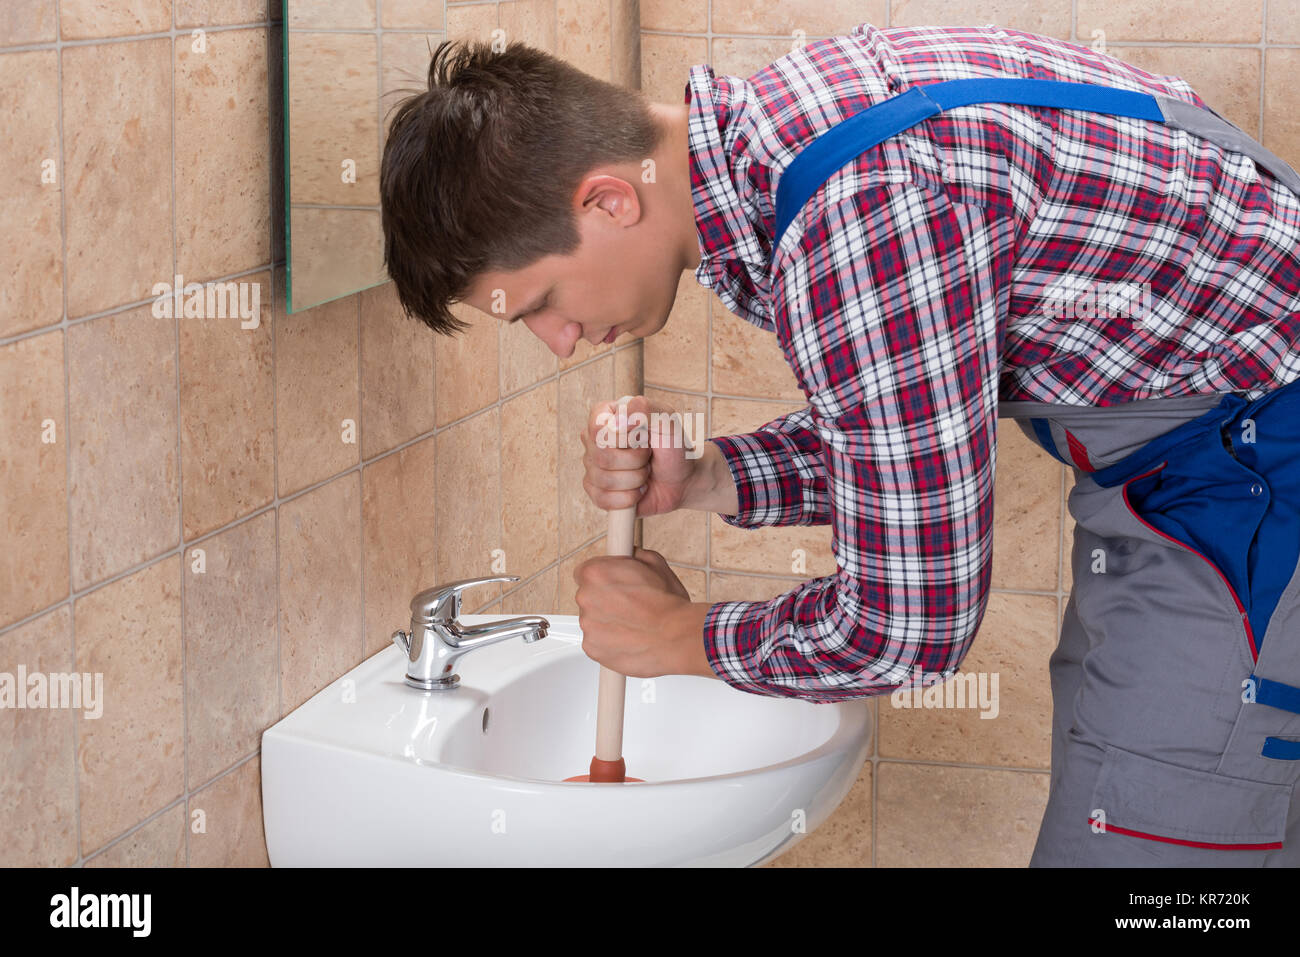 Plumber Using Plunger In Bathroom Sink - Stock Image